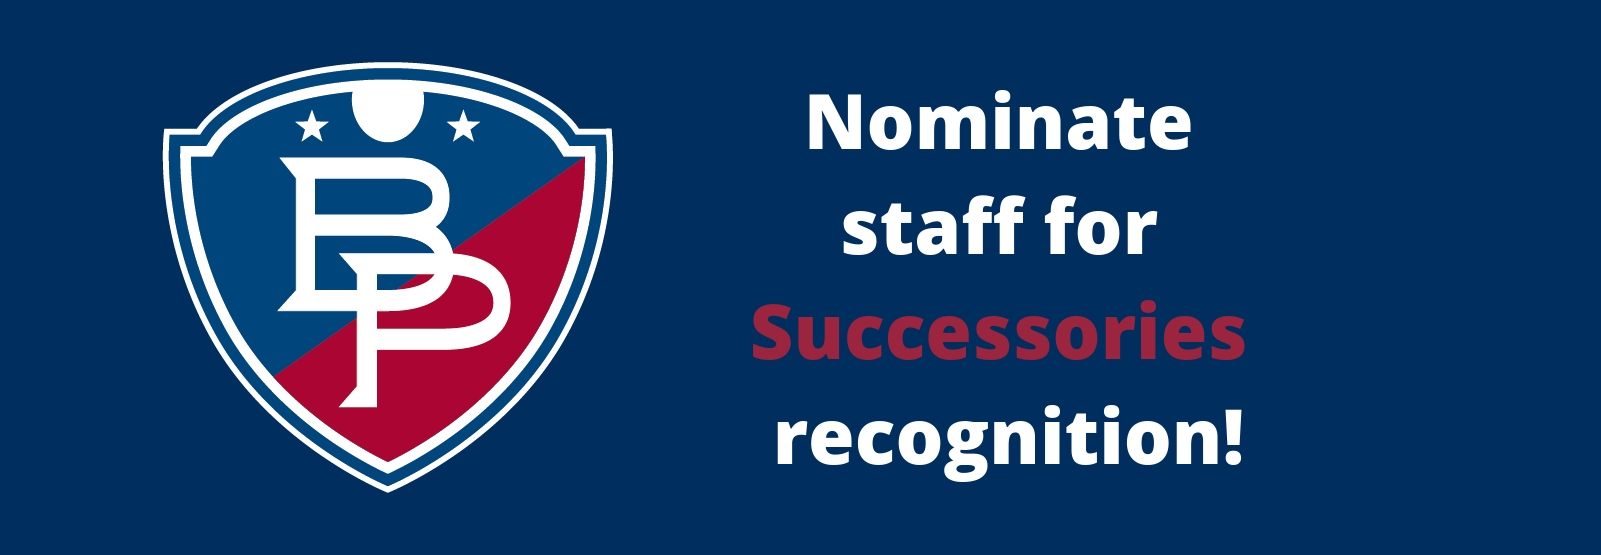 Nominate staff for Successories recognition! with BP shield